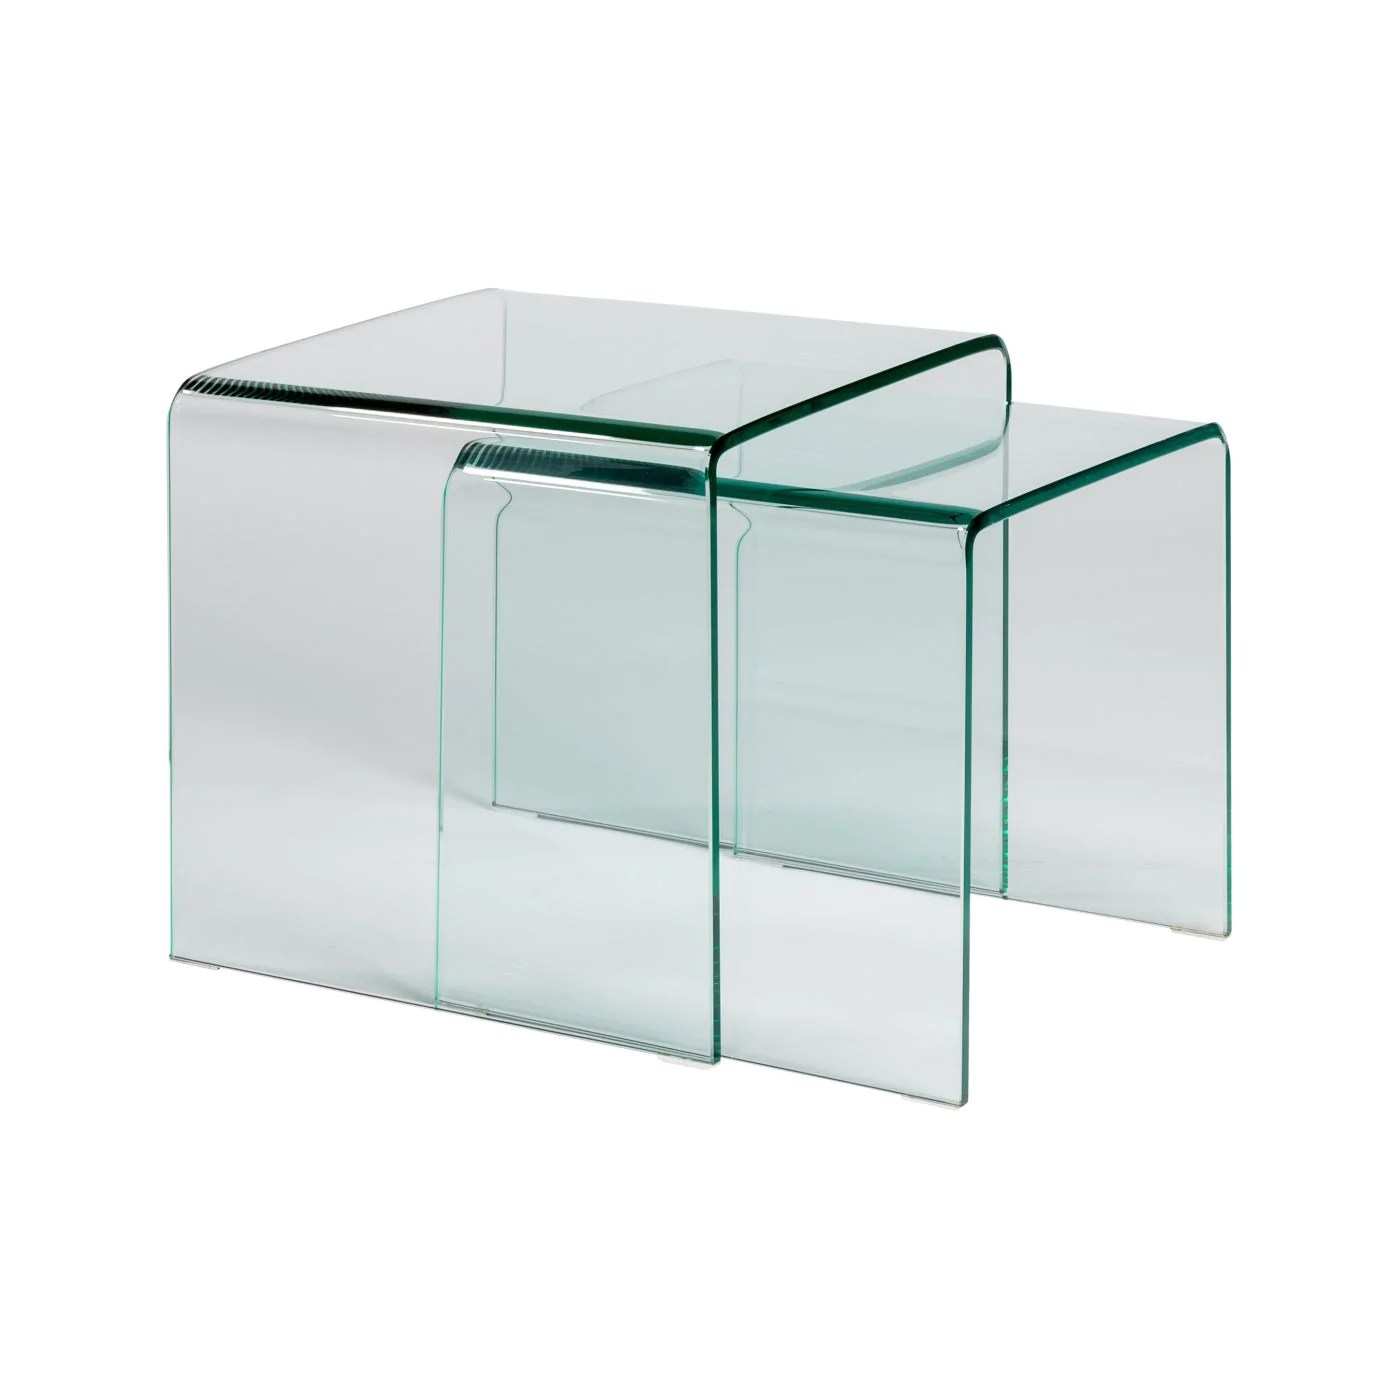 Glass Nesting Tables Buy Euro Style Euro 38732tg Gianna Nesting Tables In Clear Tempered Glass At Contemporary Furniture Warehouse